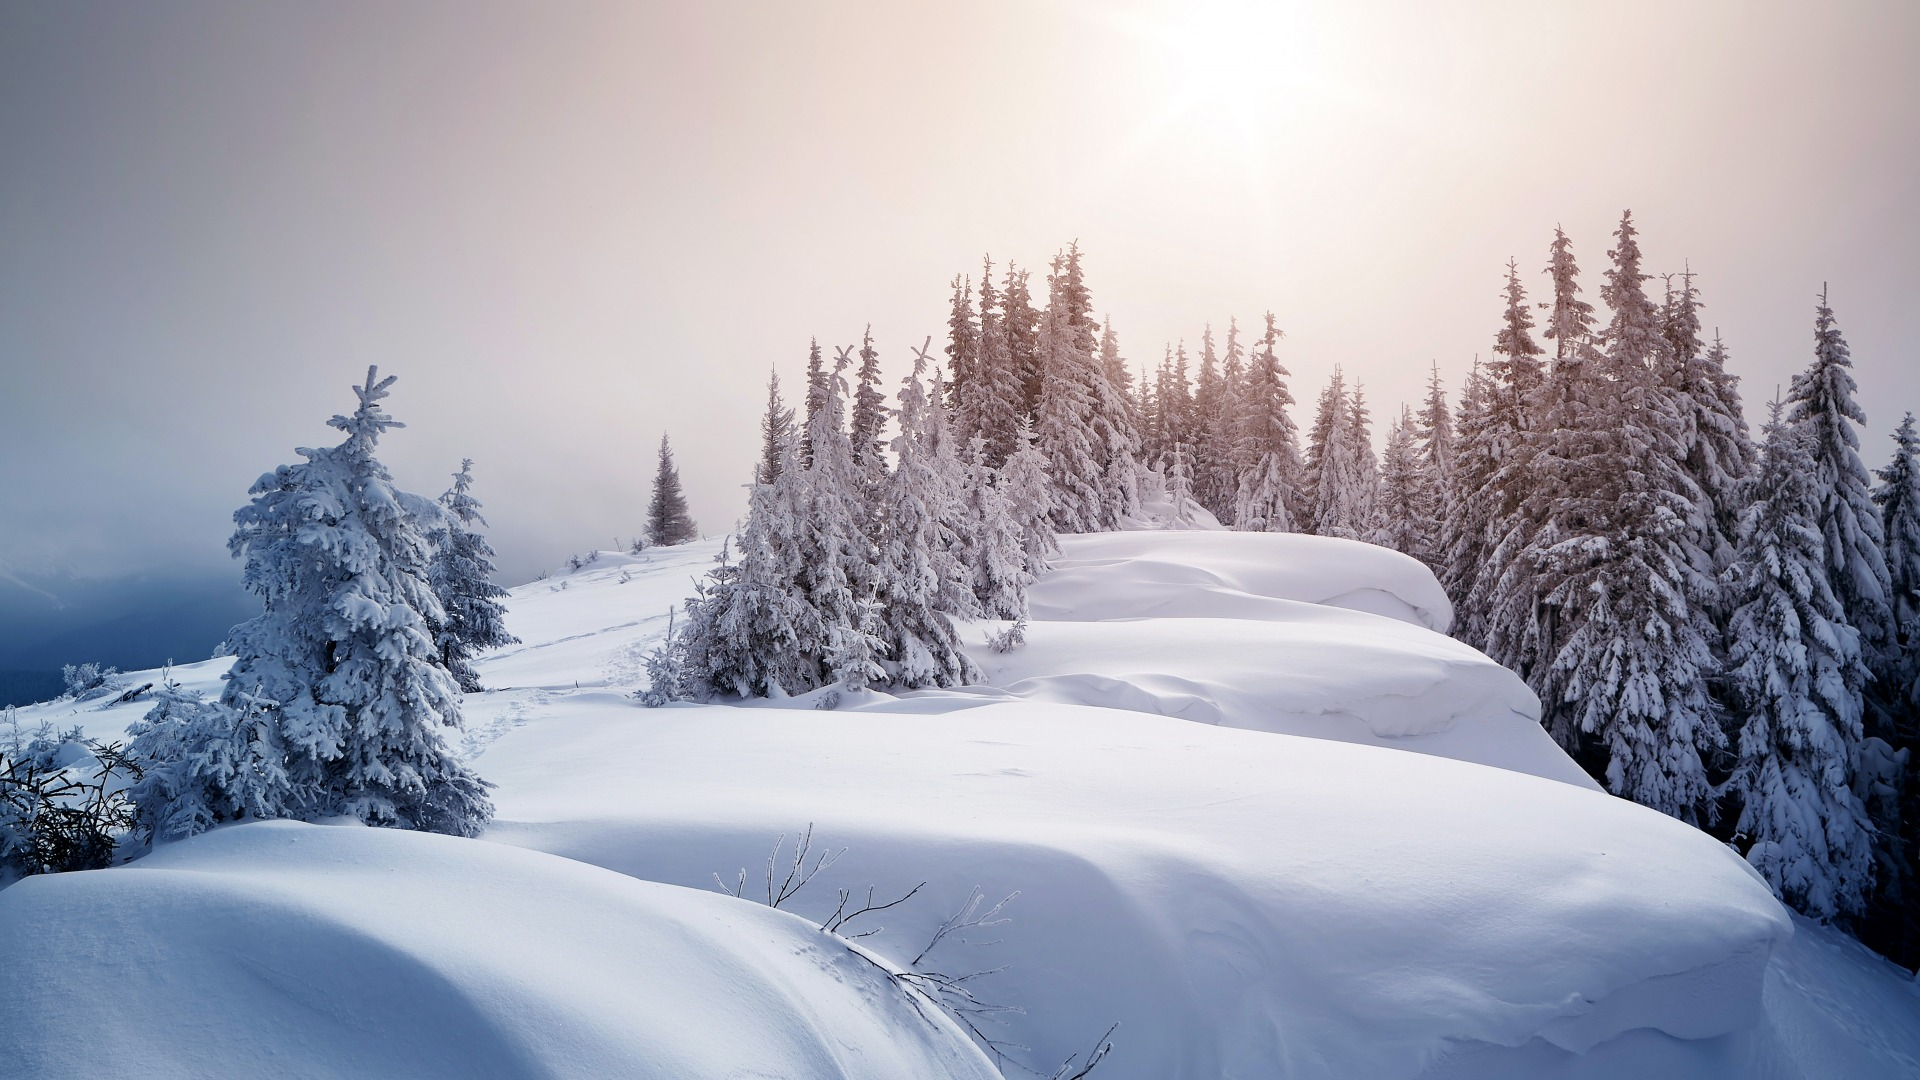 Download-winter-snow-trees-ate-the-snow-section-Resolution-1920x1080-wallpaper-wp3605138